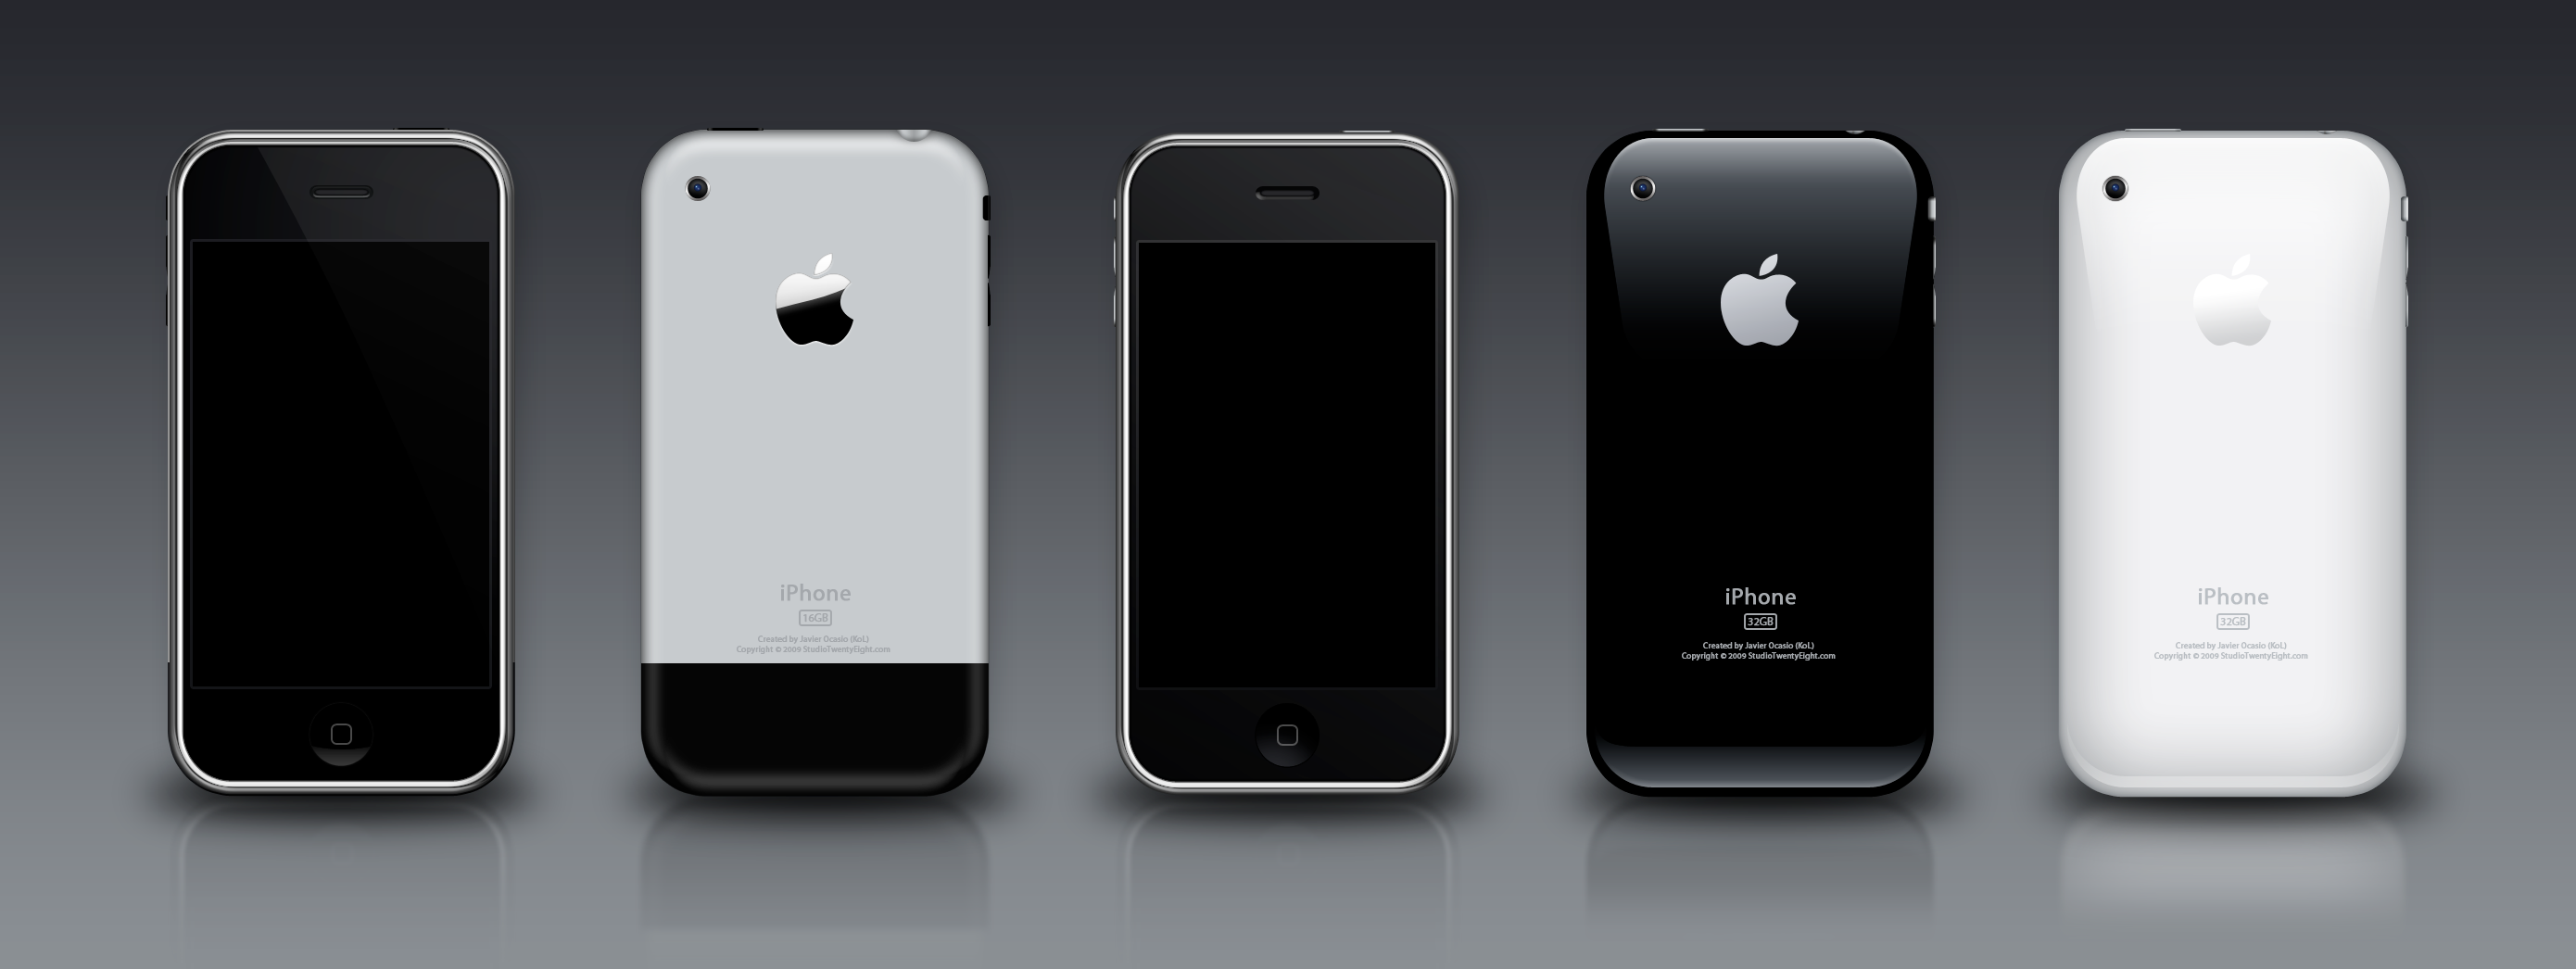 iPhone 3G-3GS PSD by javierocasio